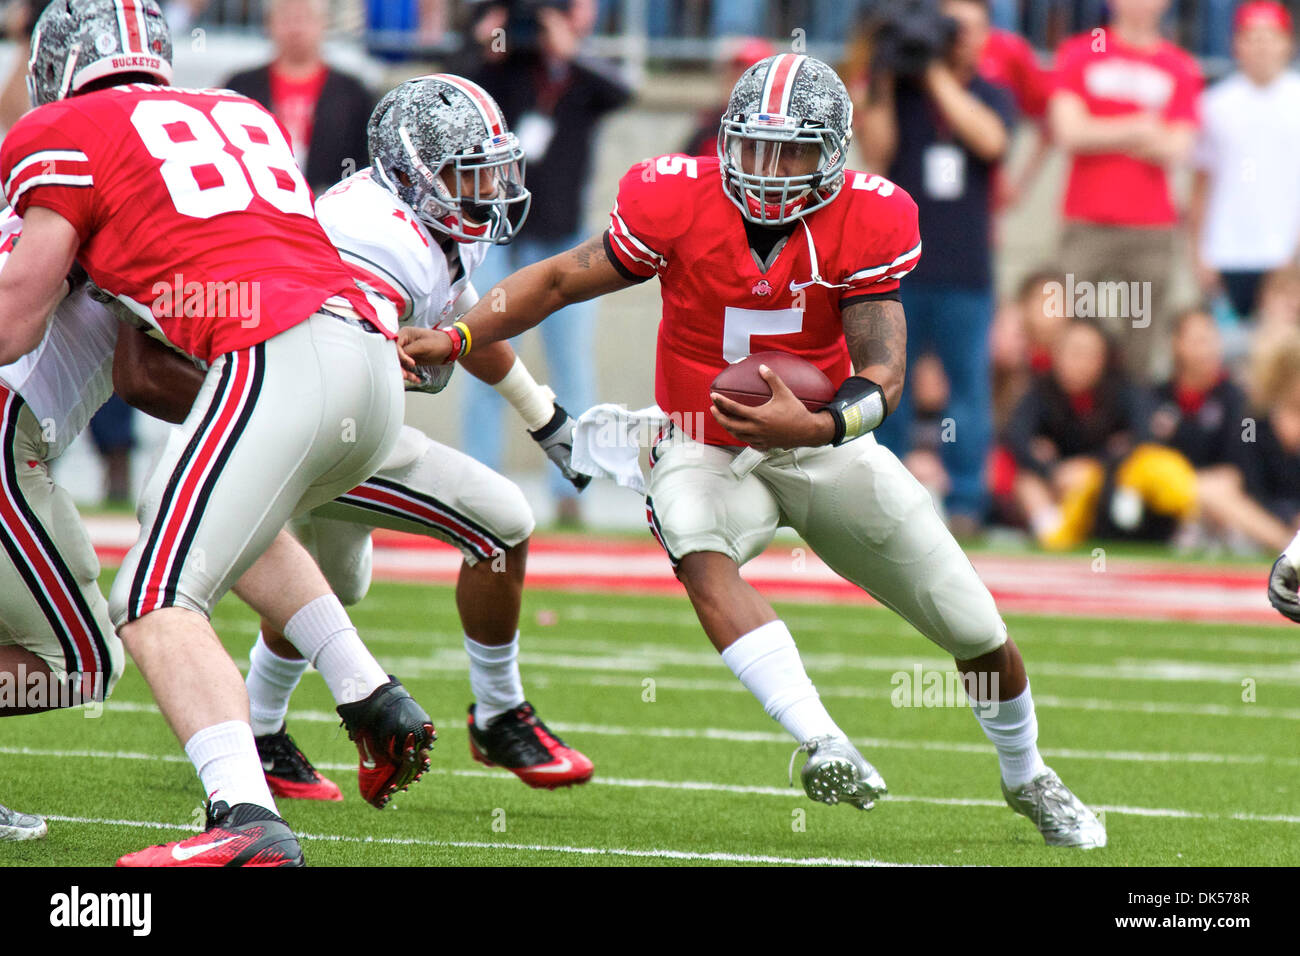 release info on 7e9d1 a6a1c Ryan Shazier Stock Photos & Ryan Shazier Stock Images - Alamy